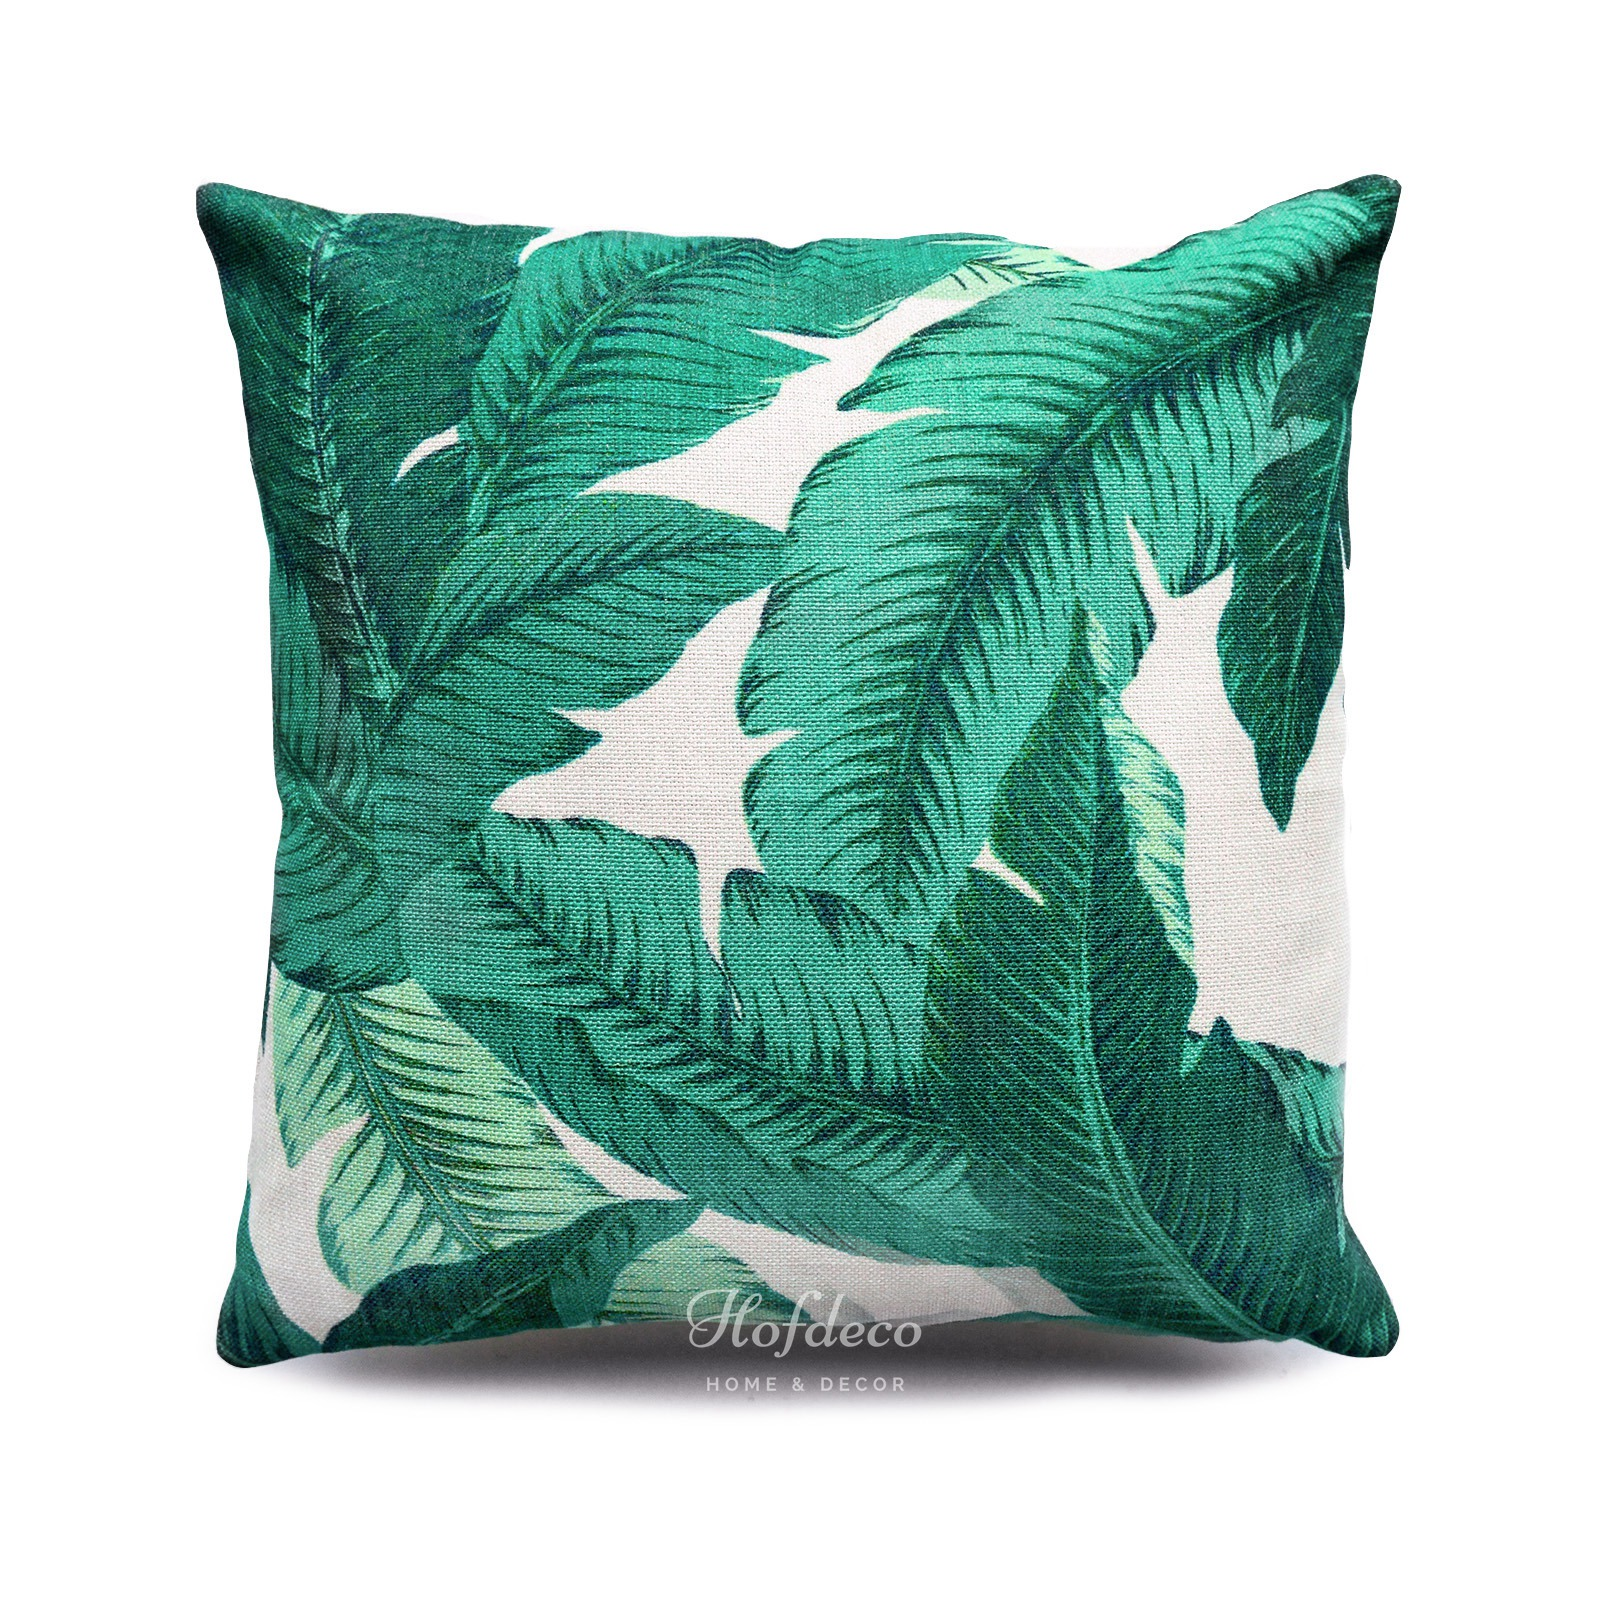 tropical sofa throw cover colorado leather bed pillow banana palm leafs heavy weight